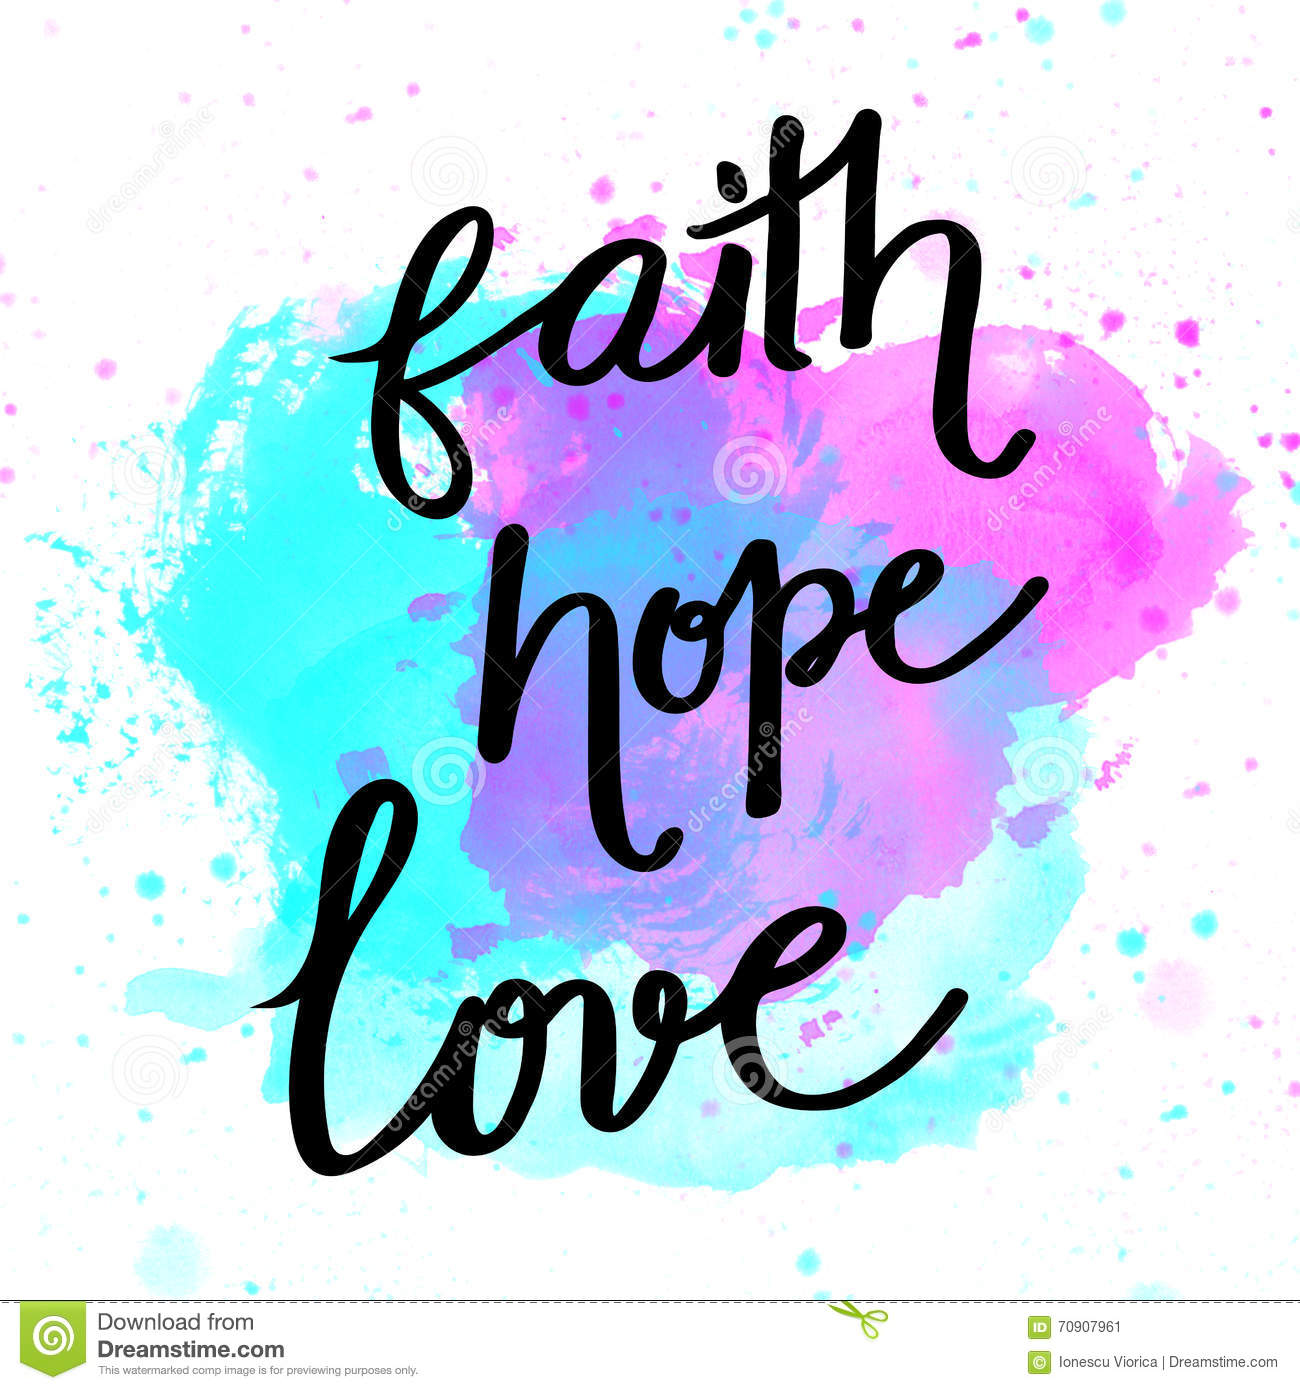 Love and hope clipart vector transparent download Faith, Hope, Love Hand Lettering Stock Illustration - Image: 70907961 vector transparent download